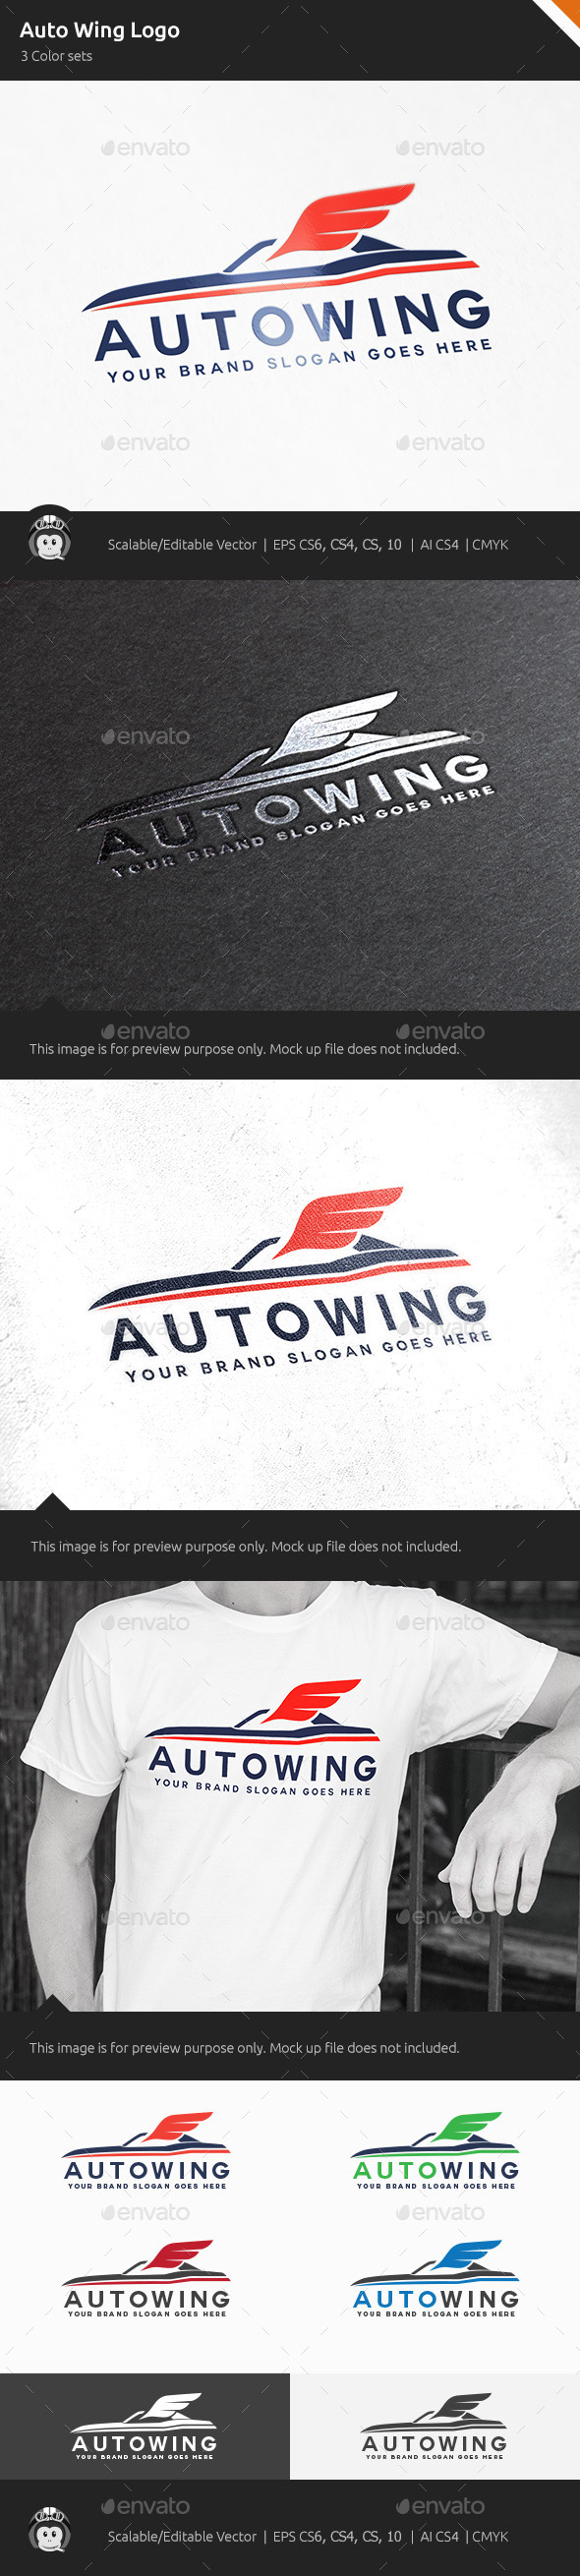 Auto Car Wing Logo - Vector Abstract